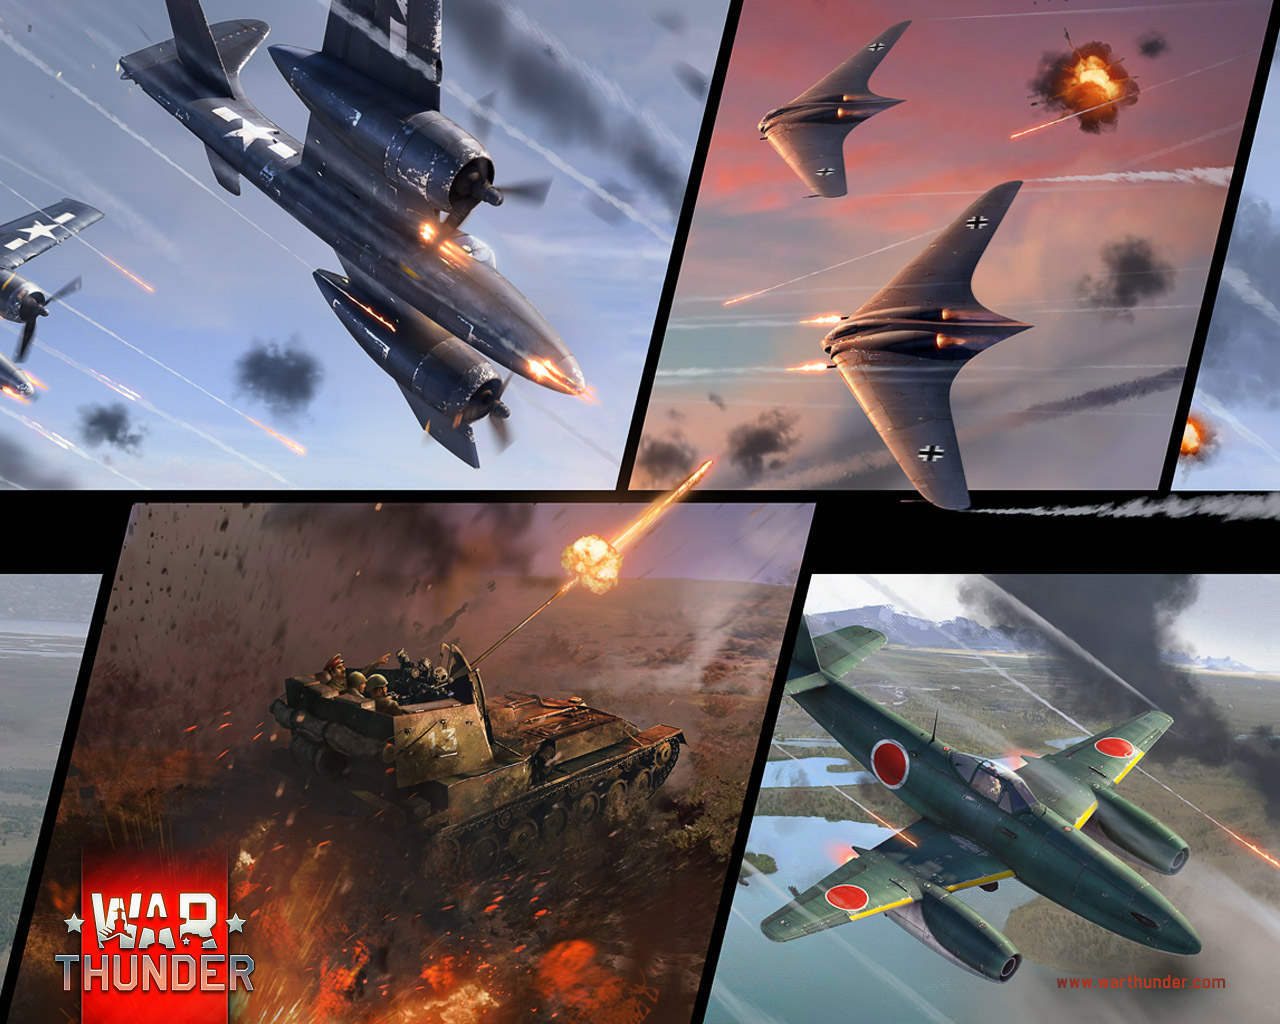 Recurring Disappointment - War Thunder Steam Player Data